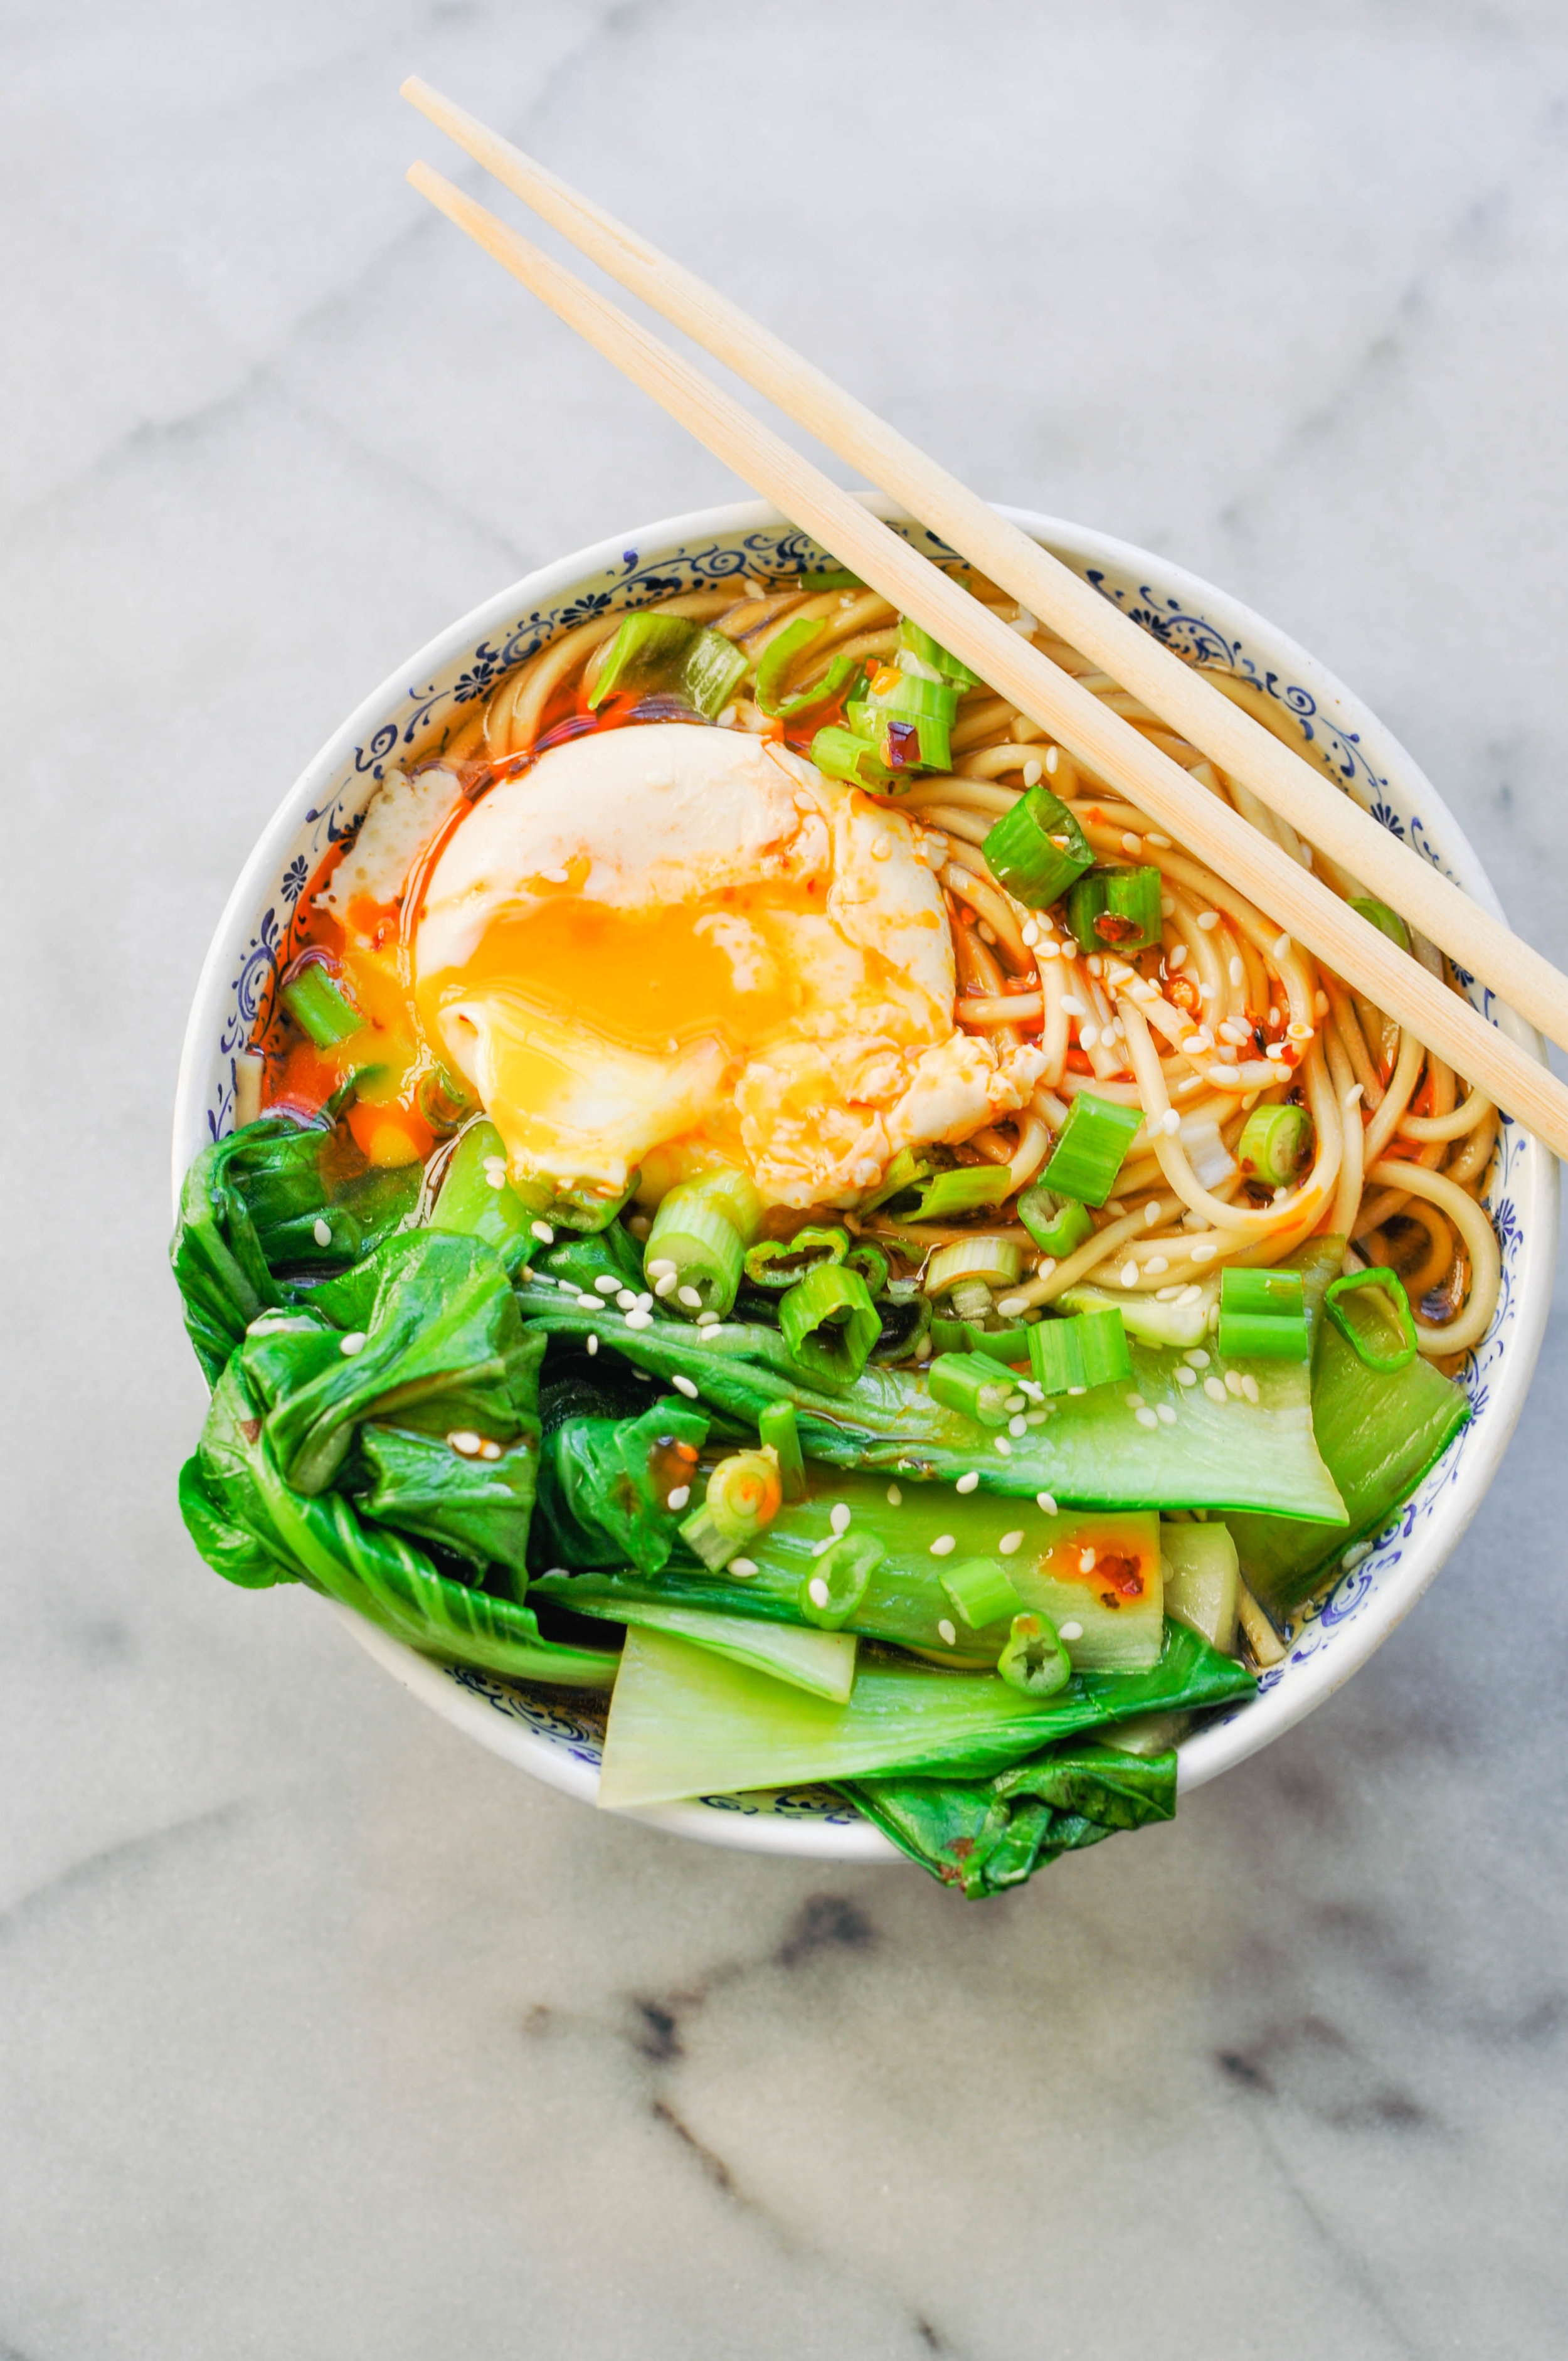 Miso Ramen with Bok Choy and Chili Oil | This Healthy Table